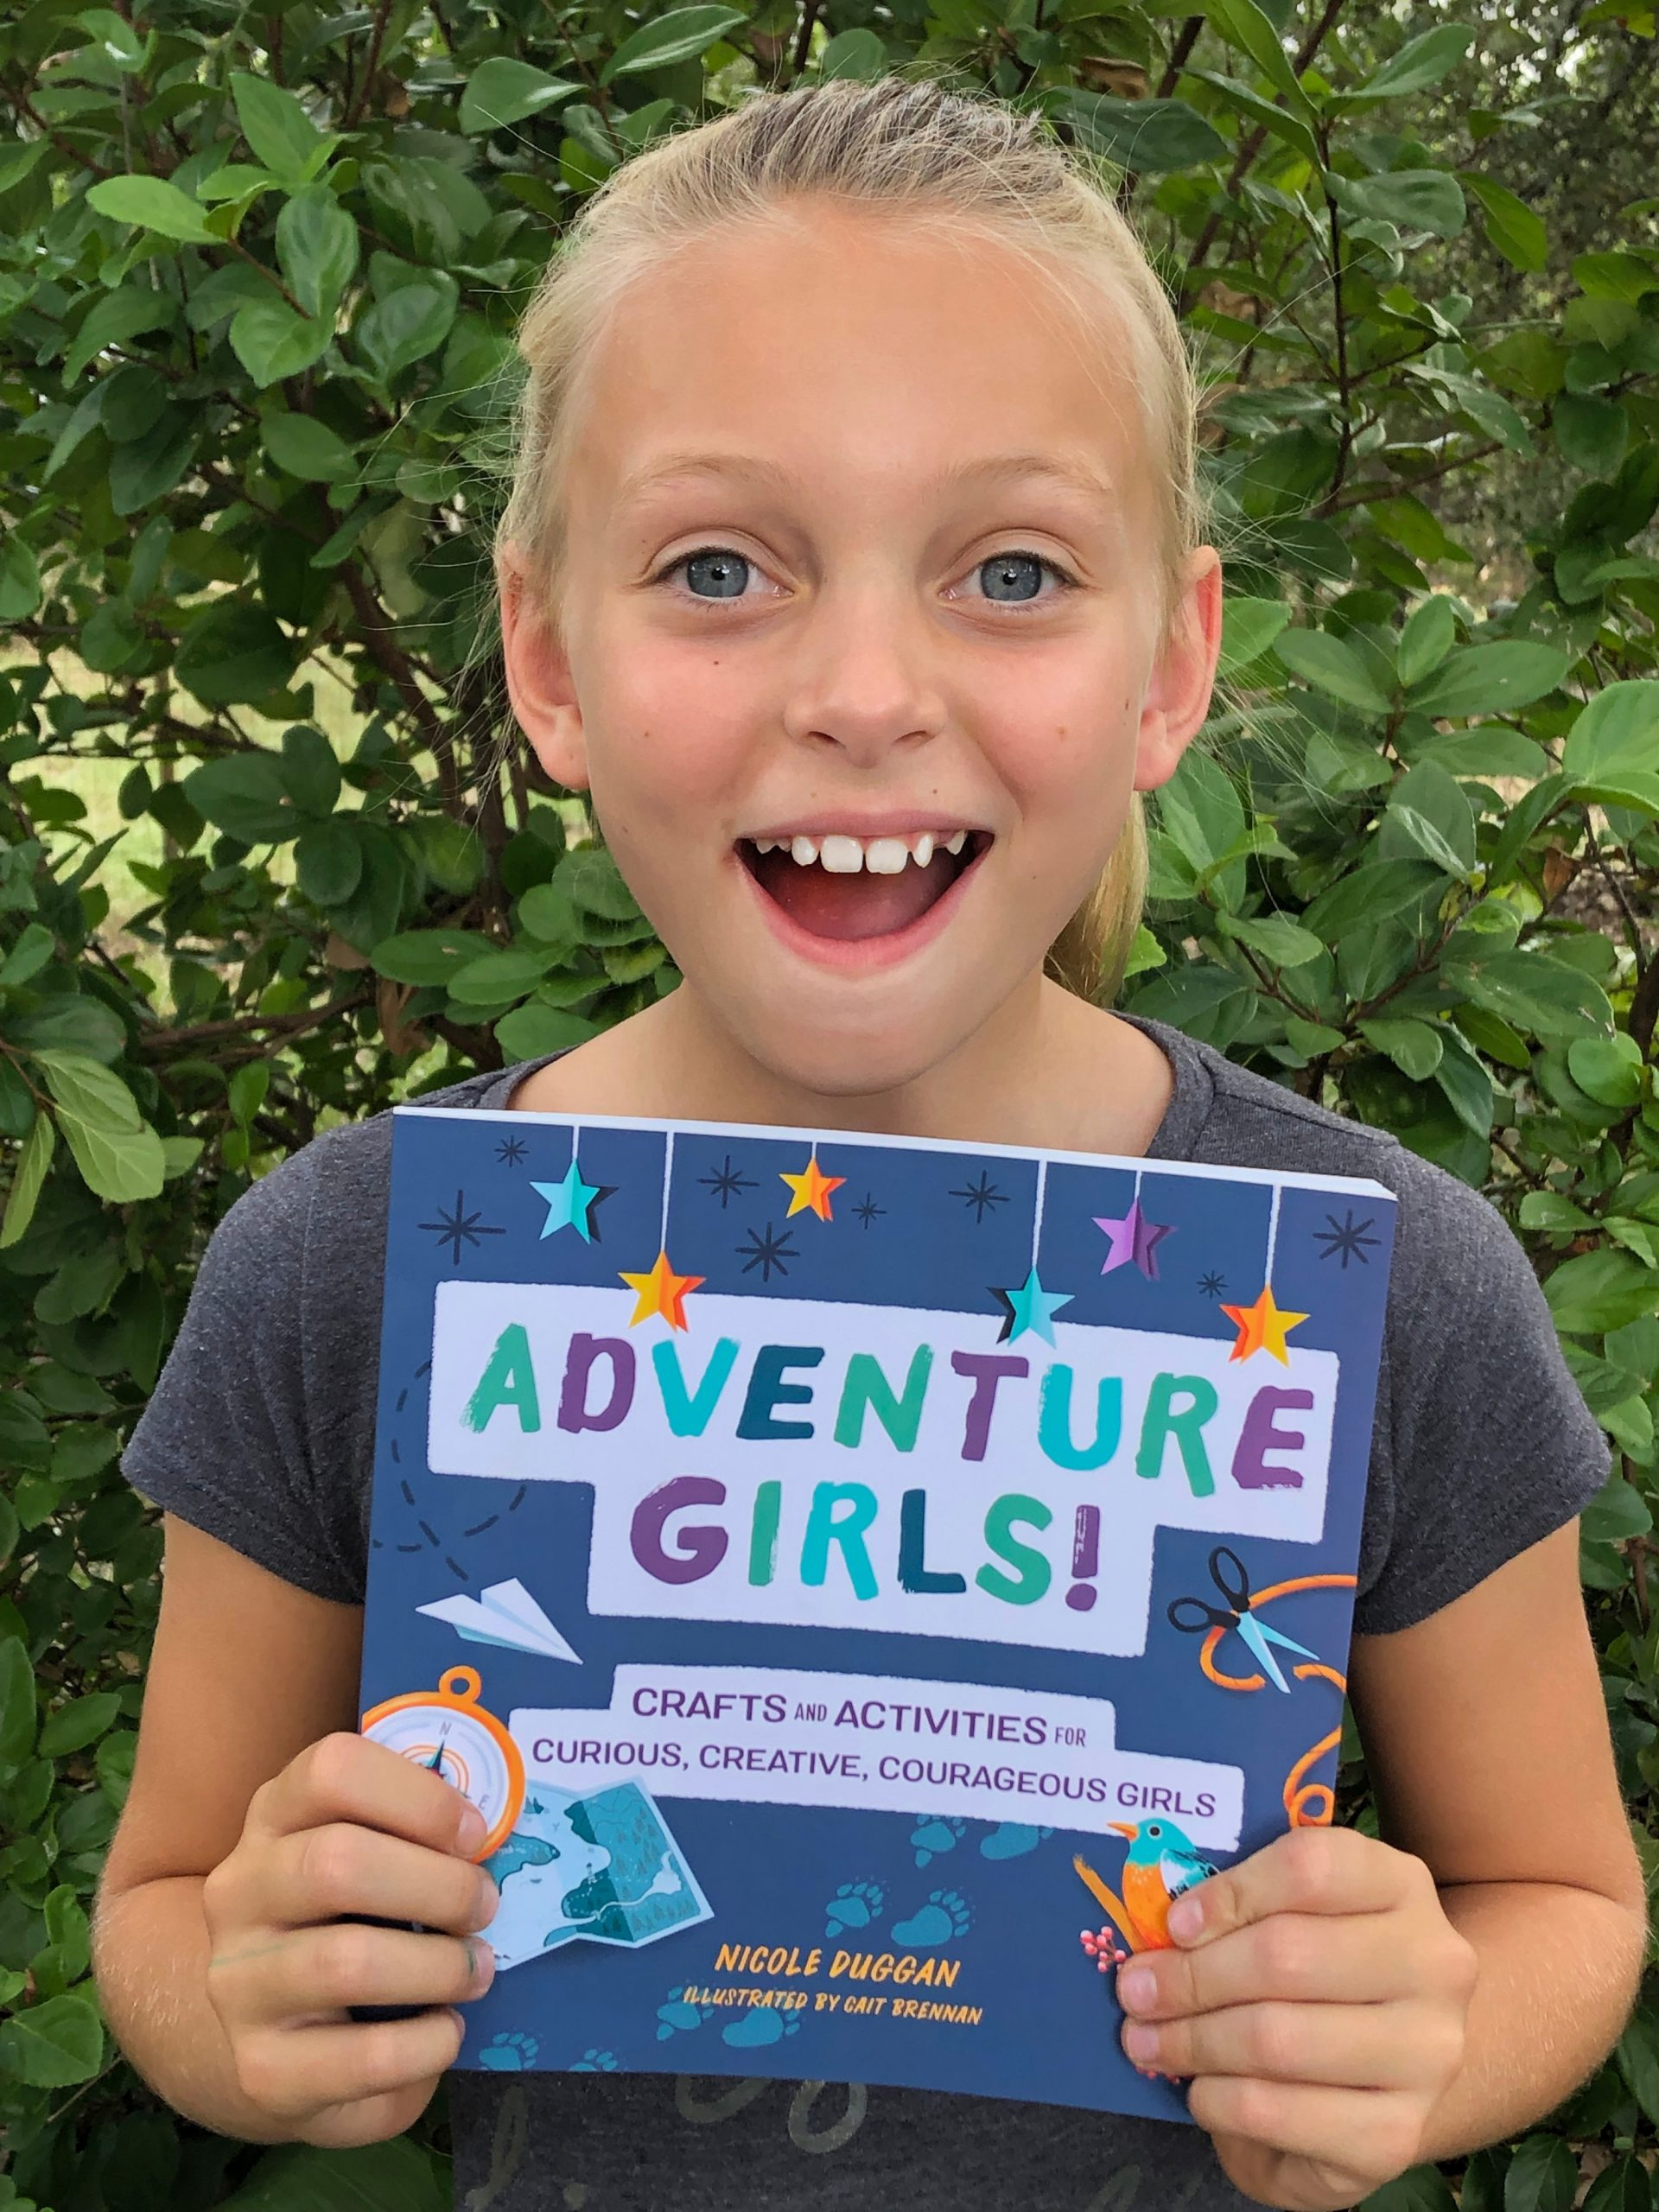 Activities and Crafts for Girls